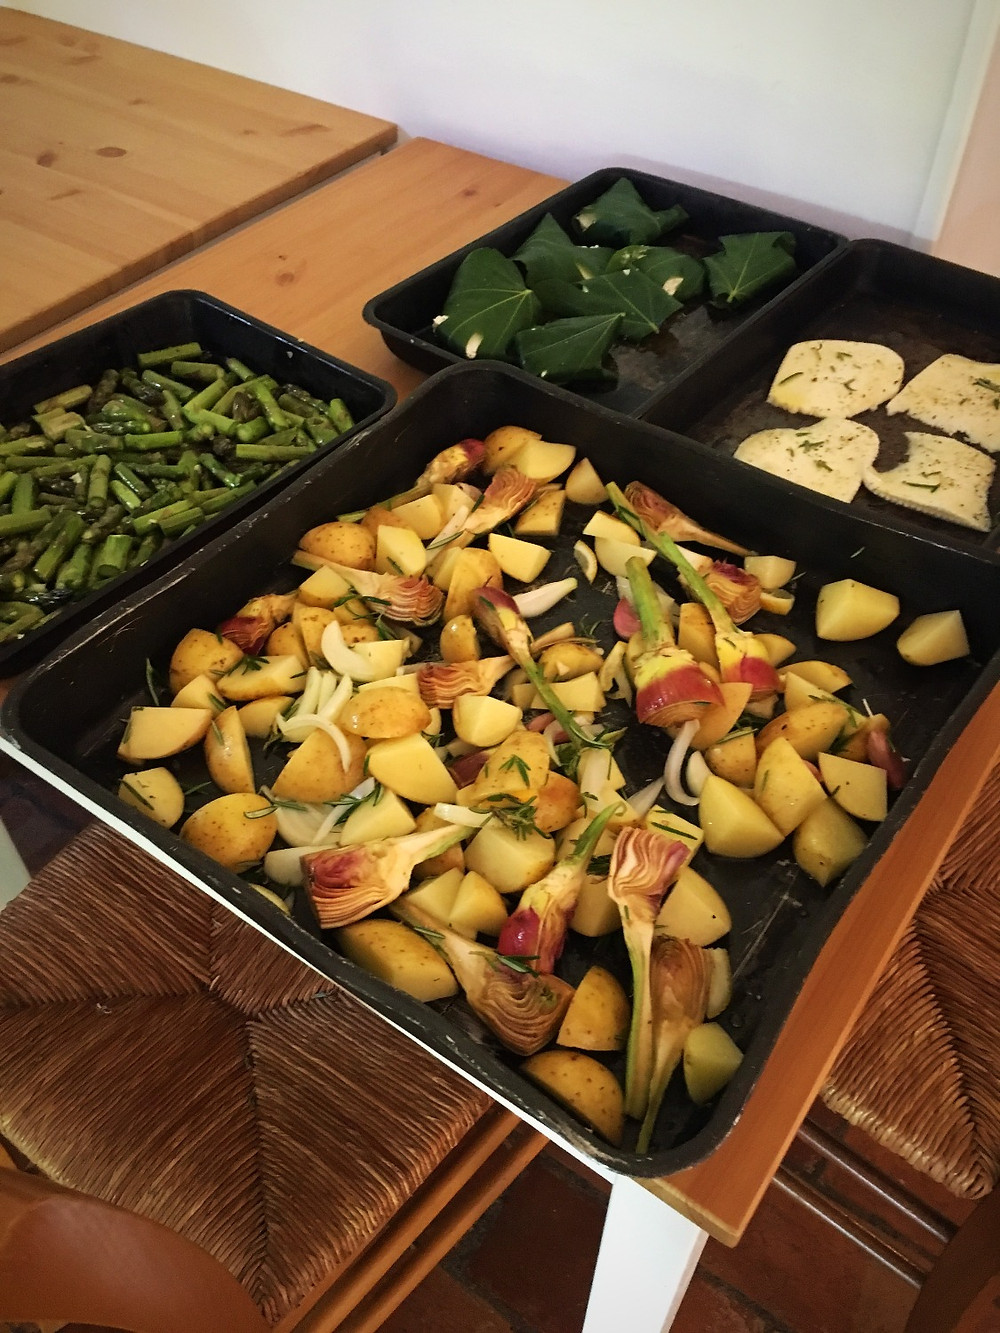 Asparagus and new potatoes prepped for recipe